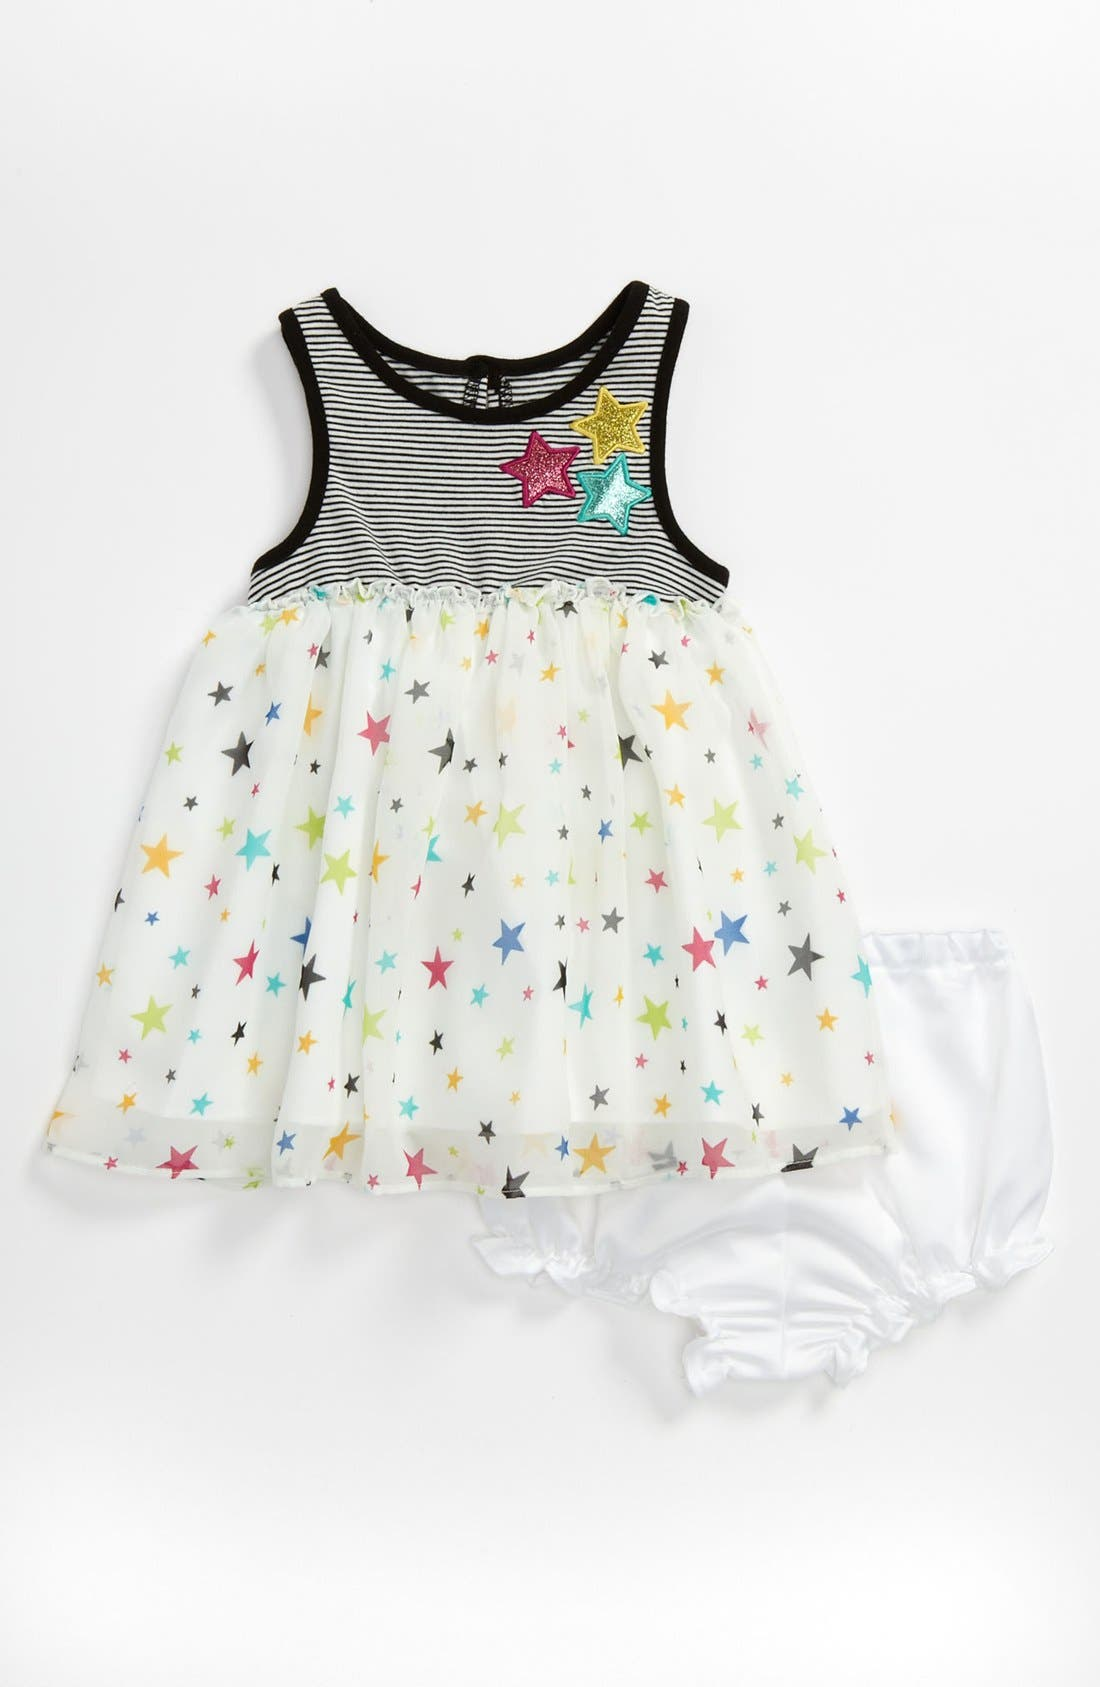 Main Image - Pippa & Julie 'Star' Dress & Bloomers (Baby)